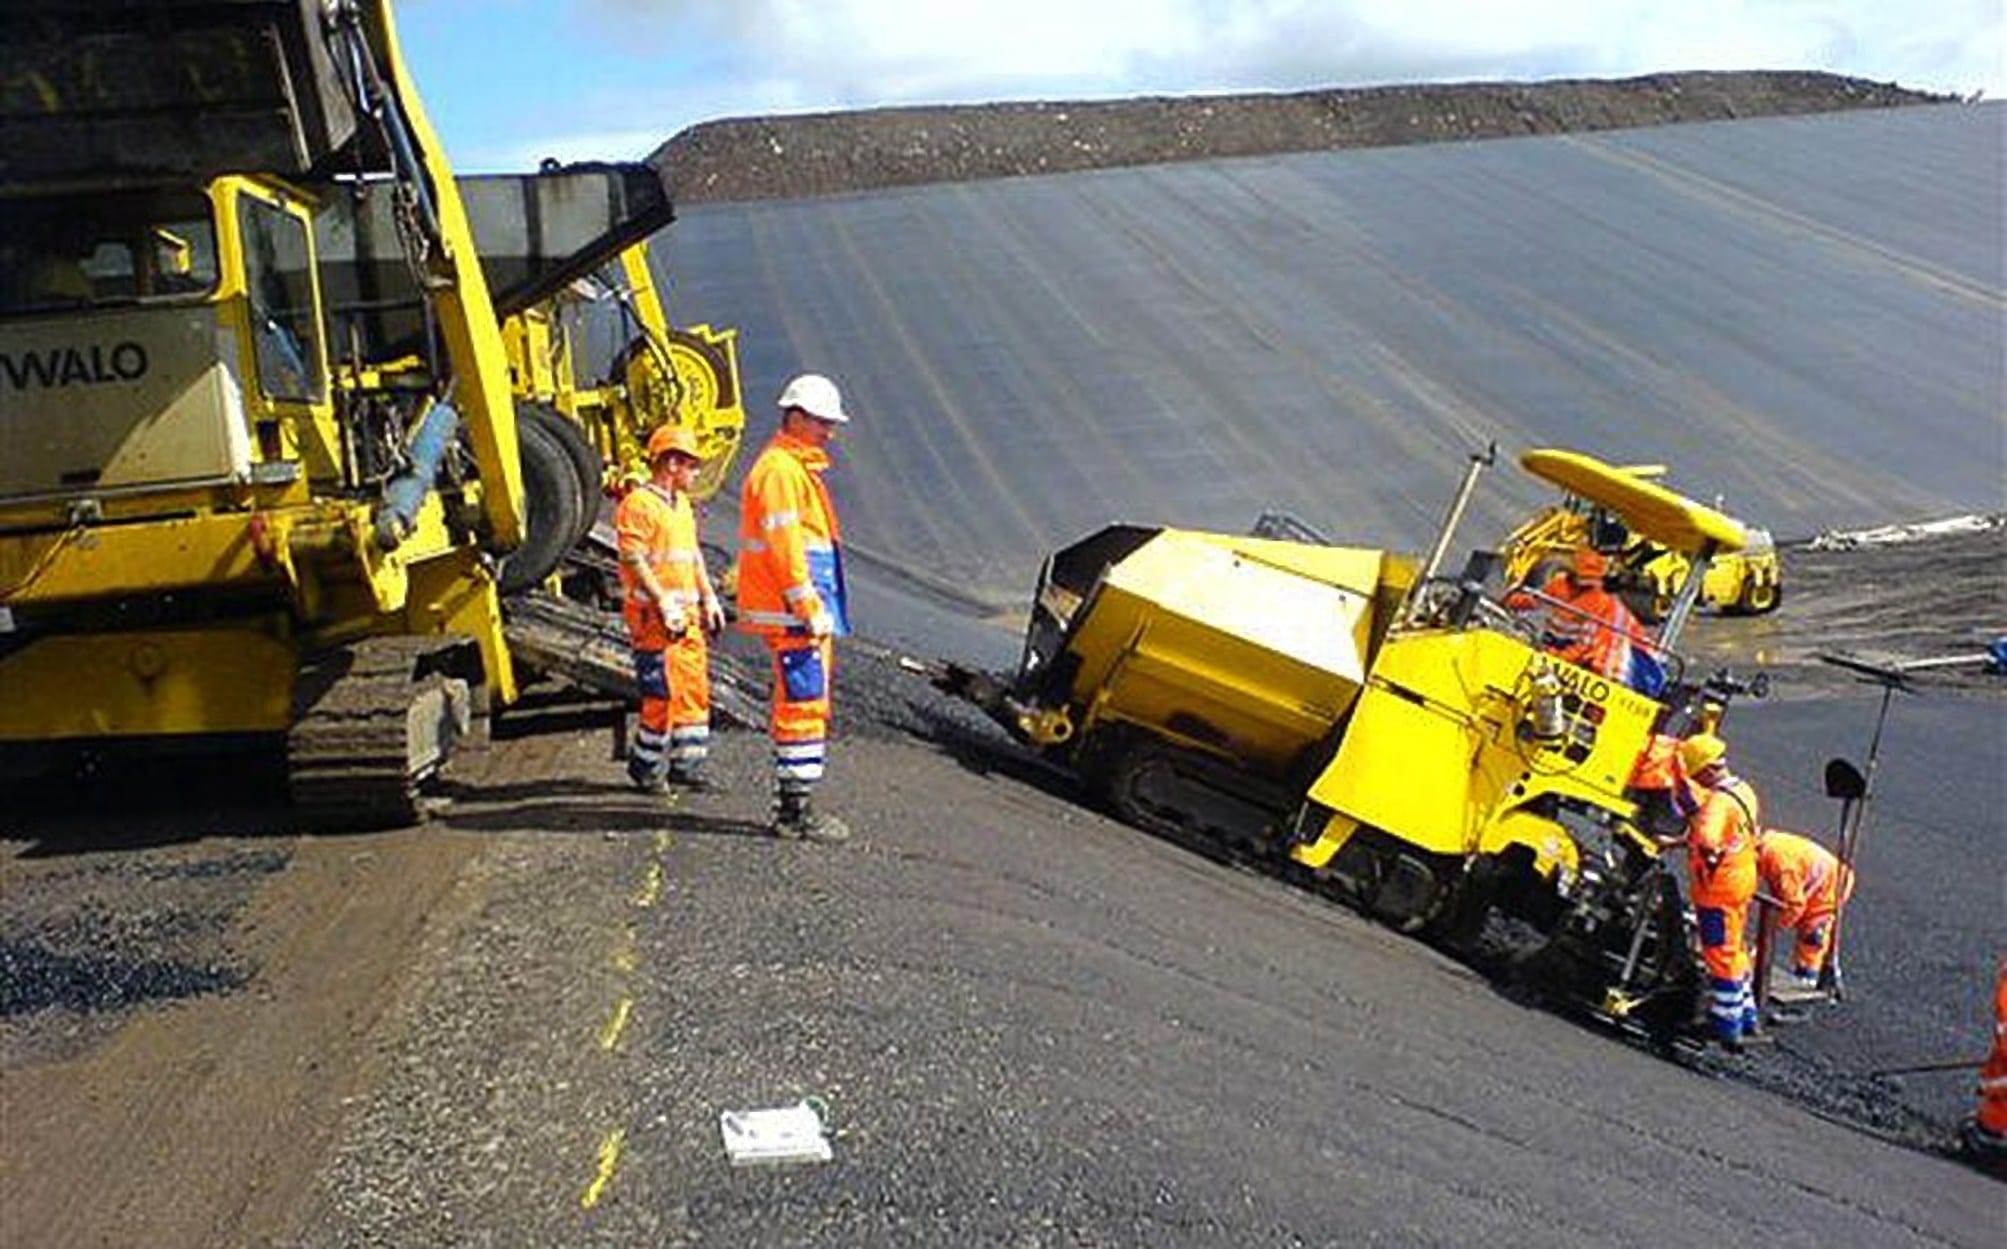 Case Study: Cottonmount Landfill, United Kingdom